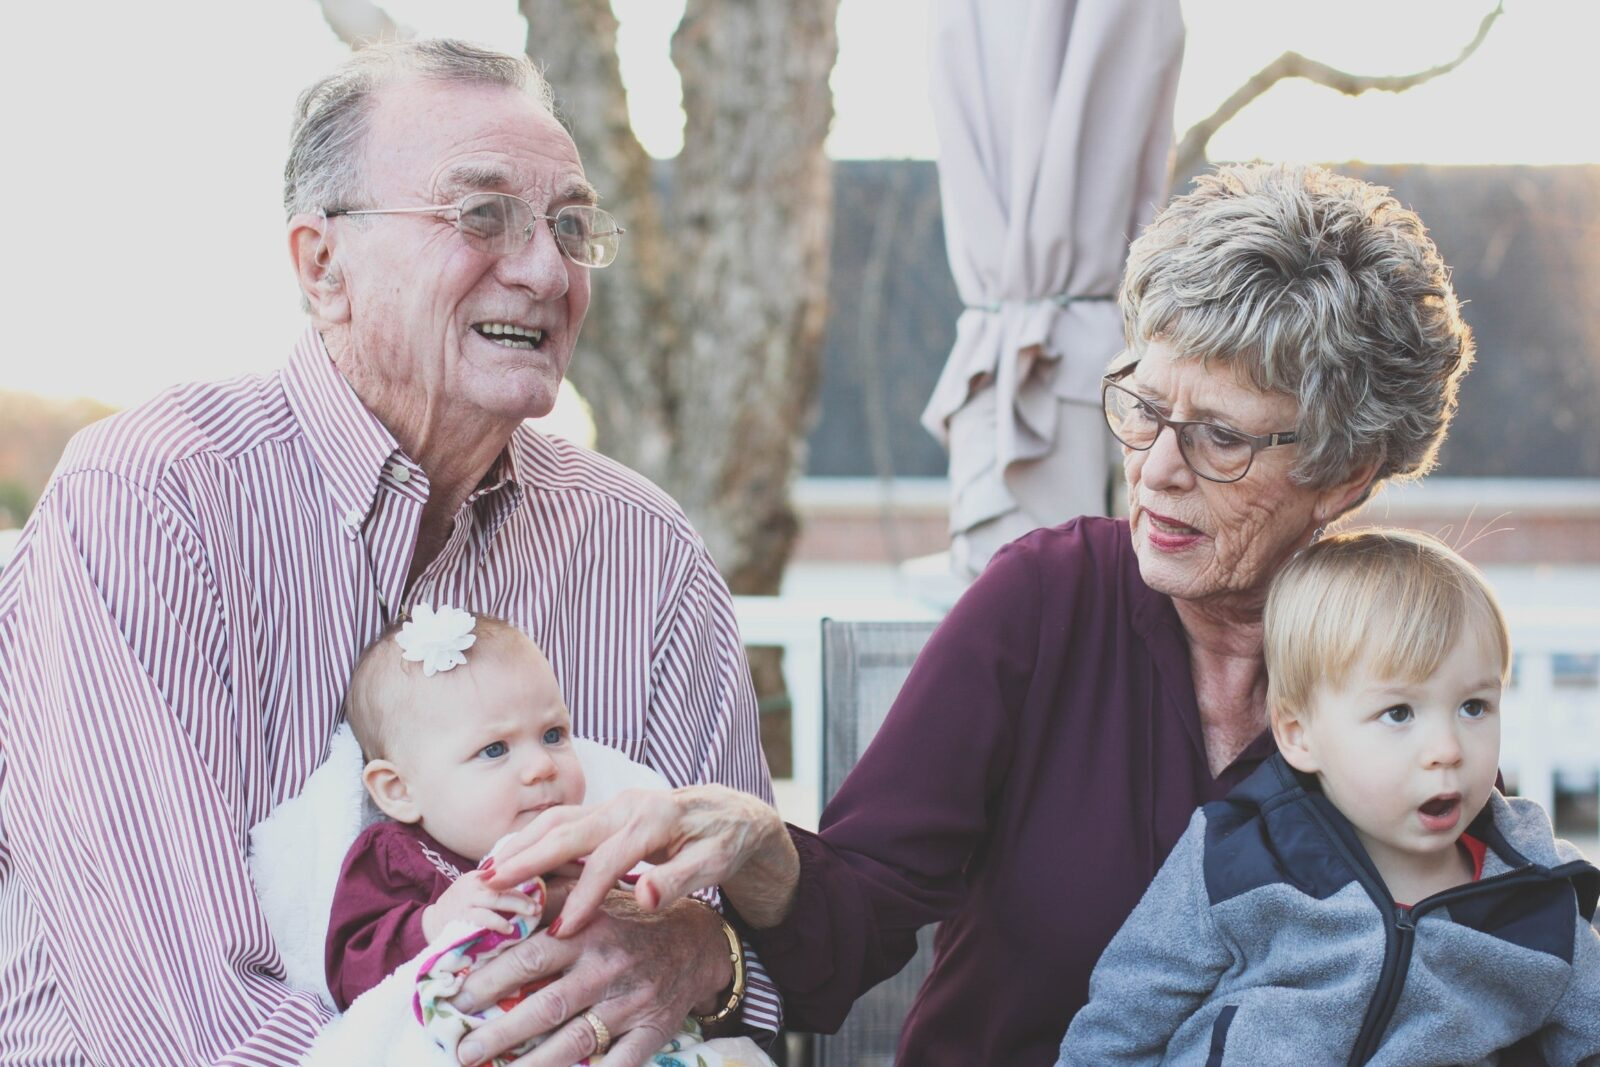 grandparents with grandchildren to illustrate aging process